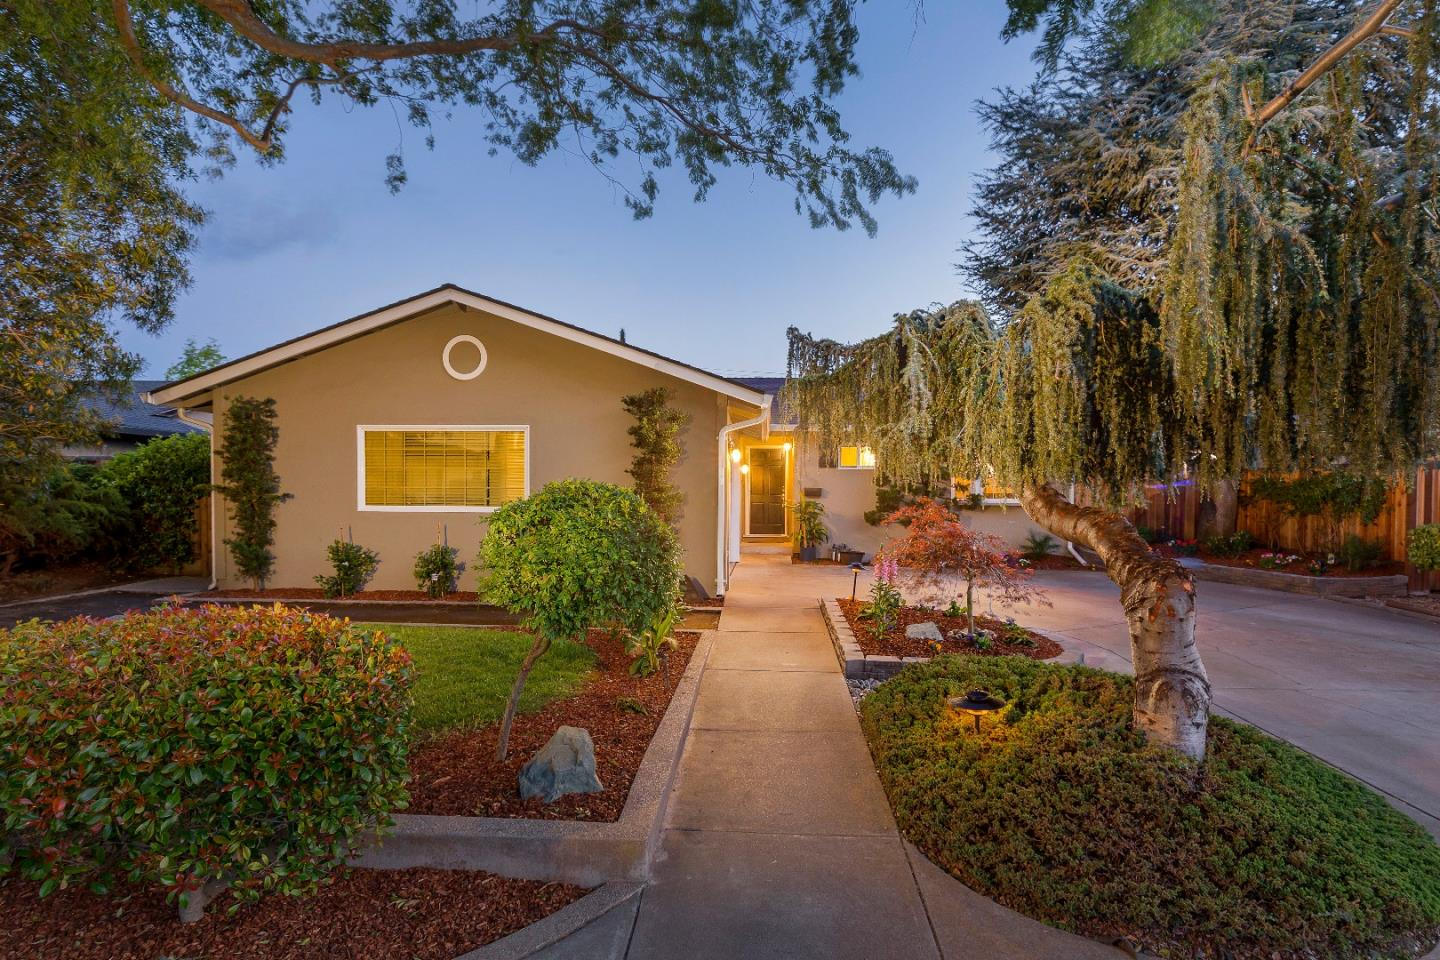 Additional photo for property listing at 948 Bucknam Ave  CAMPBELL, CALIFORNIA 95008